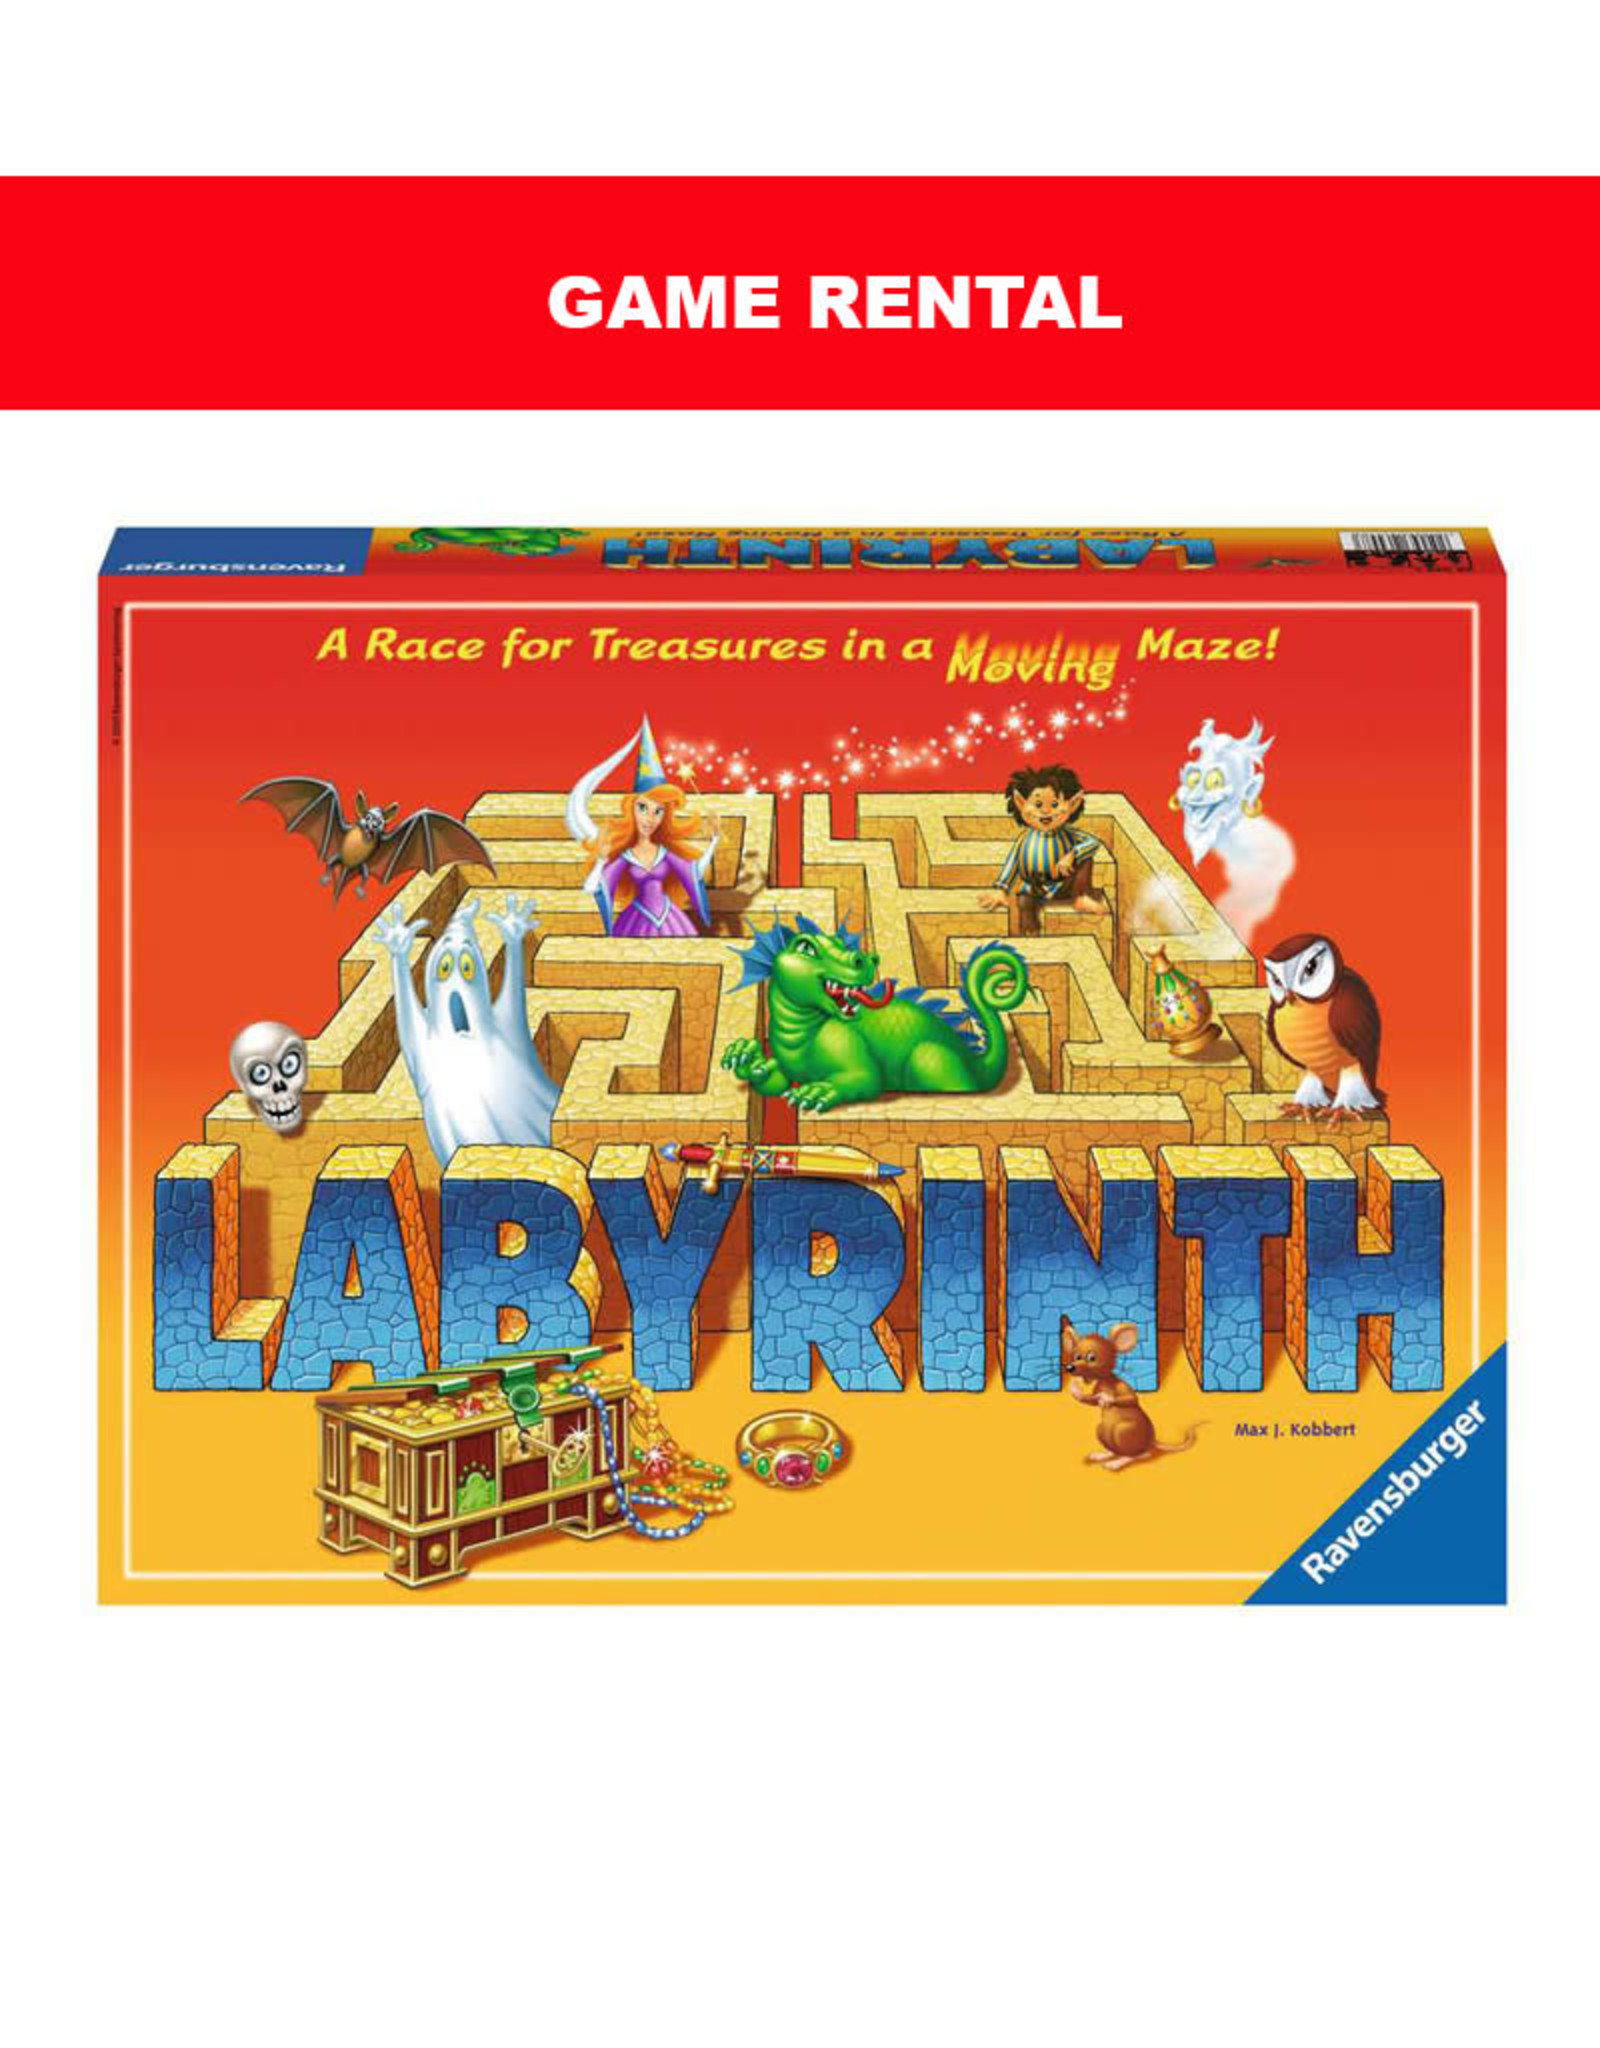 (RENT) Labyrinth for a Day. Love It! Buy It!